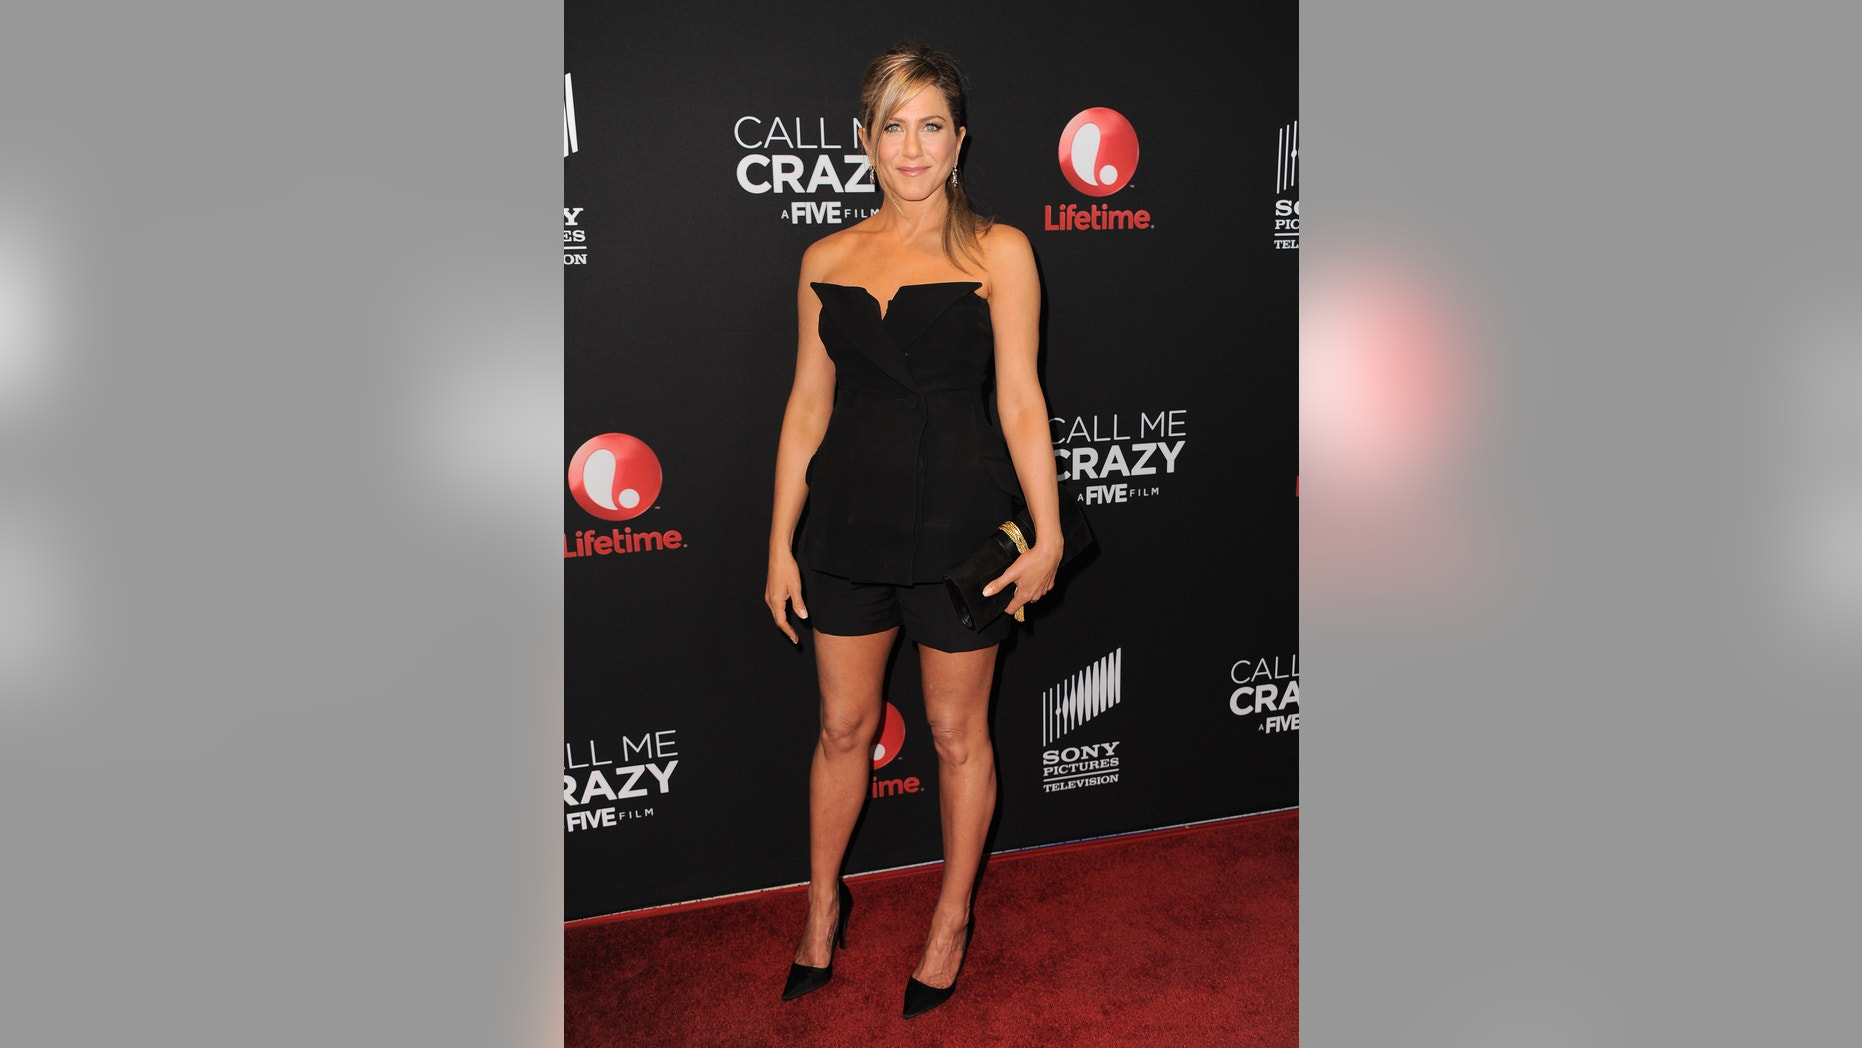 """Jennifer Aniston arrives at the world premiere of """"Call Me Crazy: A Five Film"""" at the Pacific Design Center on Tuesday, April 16, 2013 in Los Angeles."""